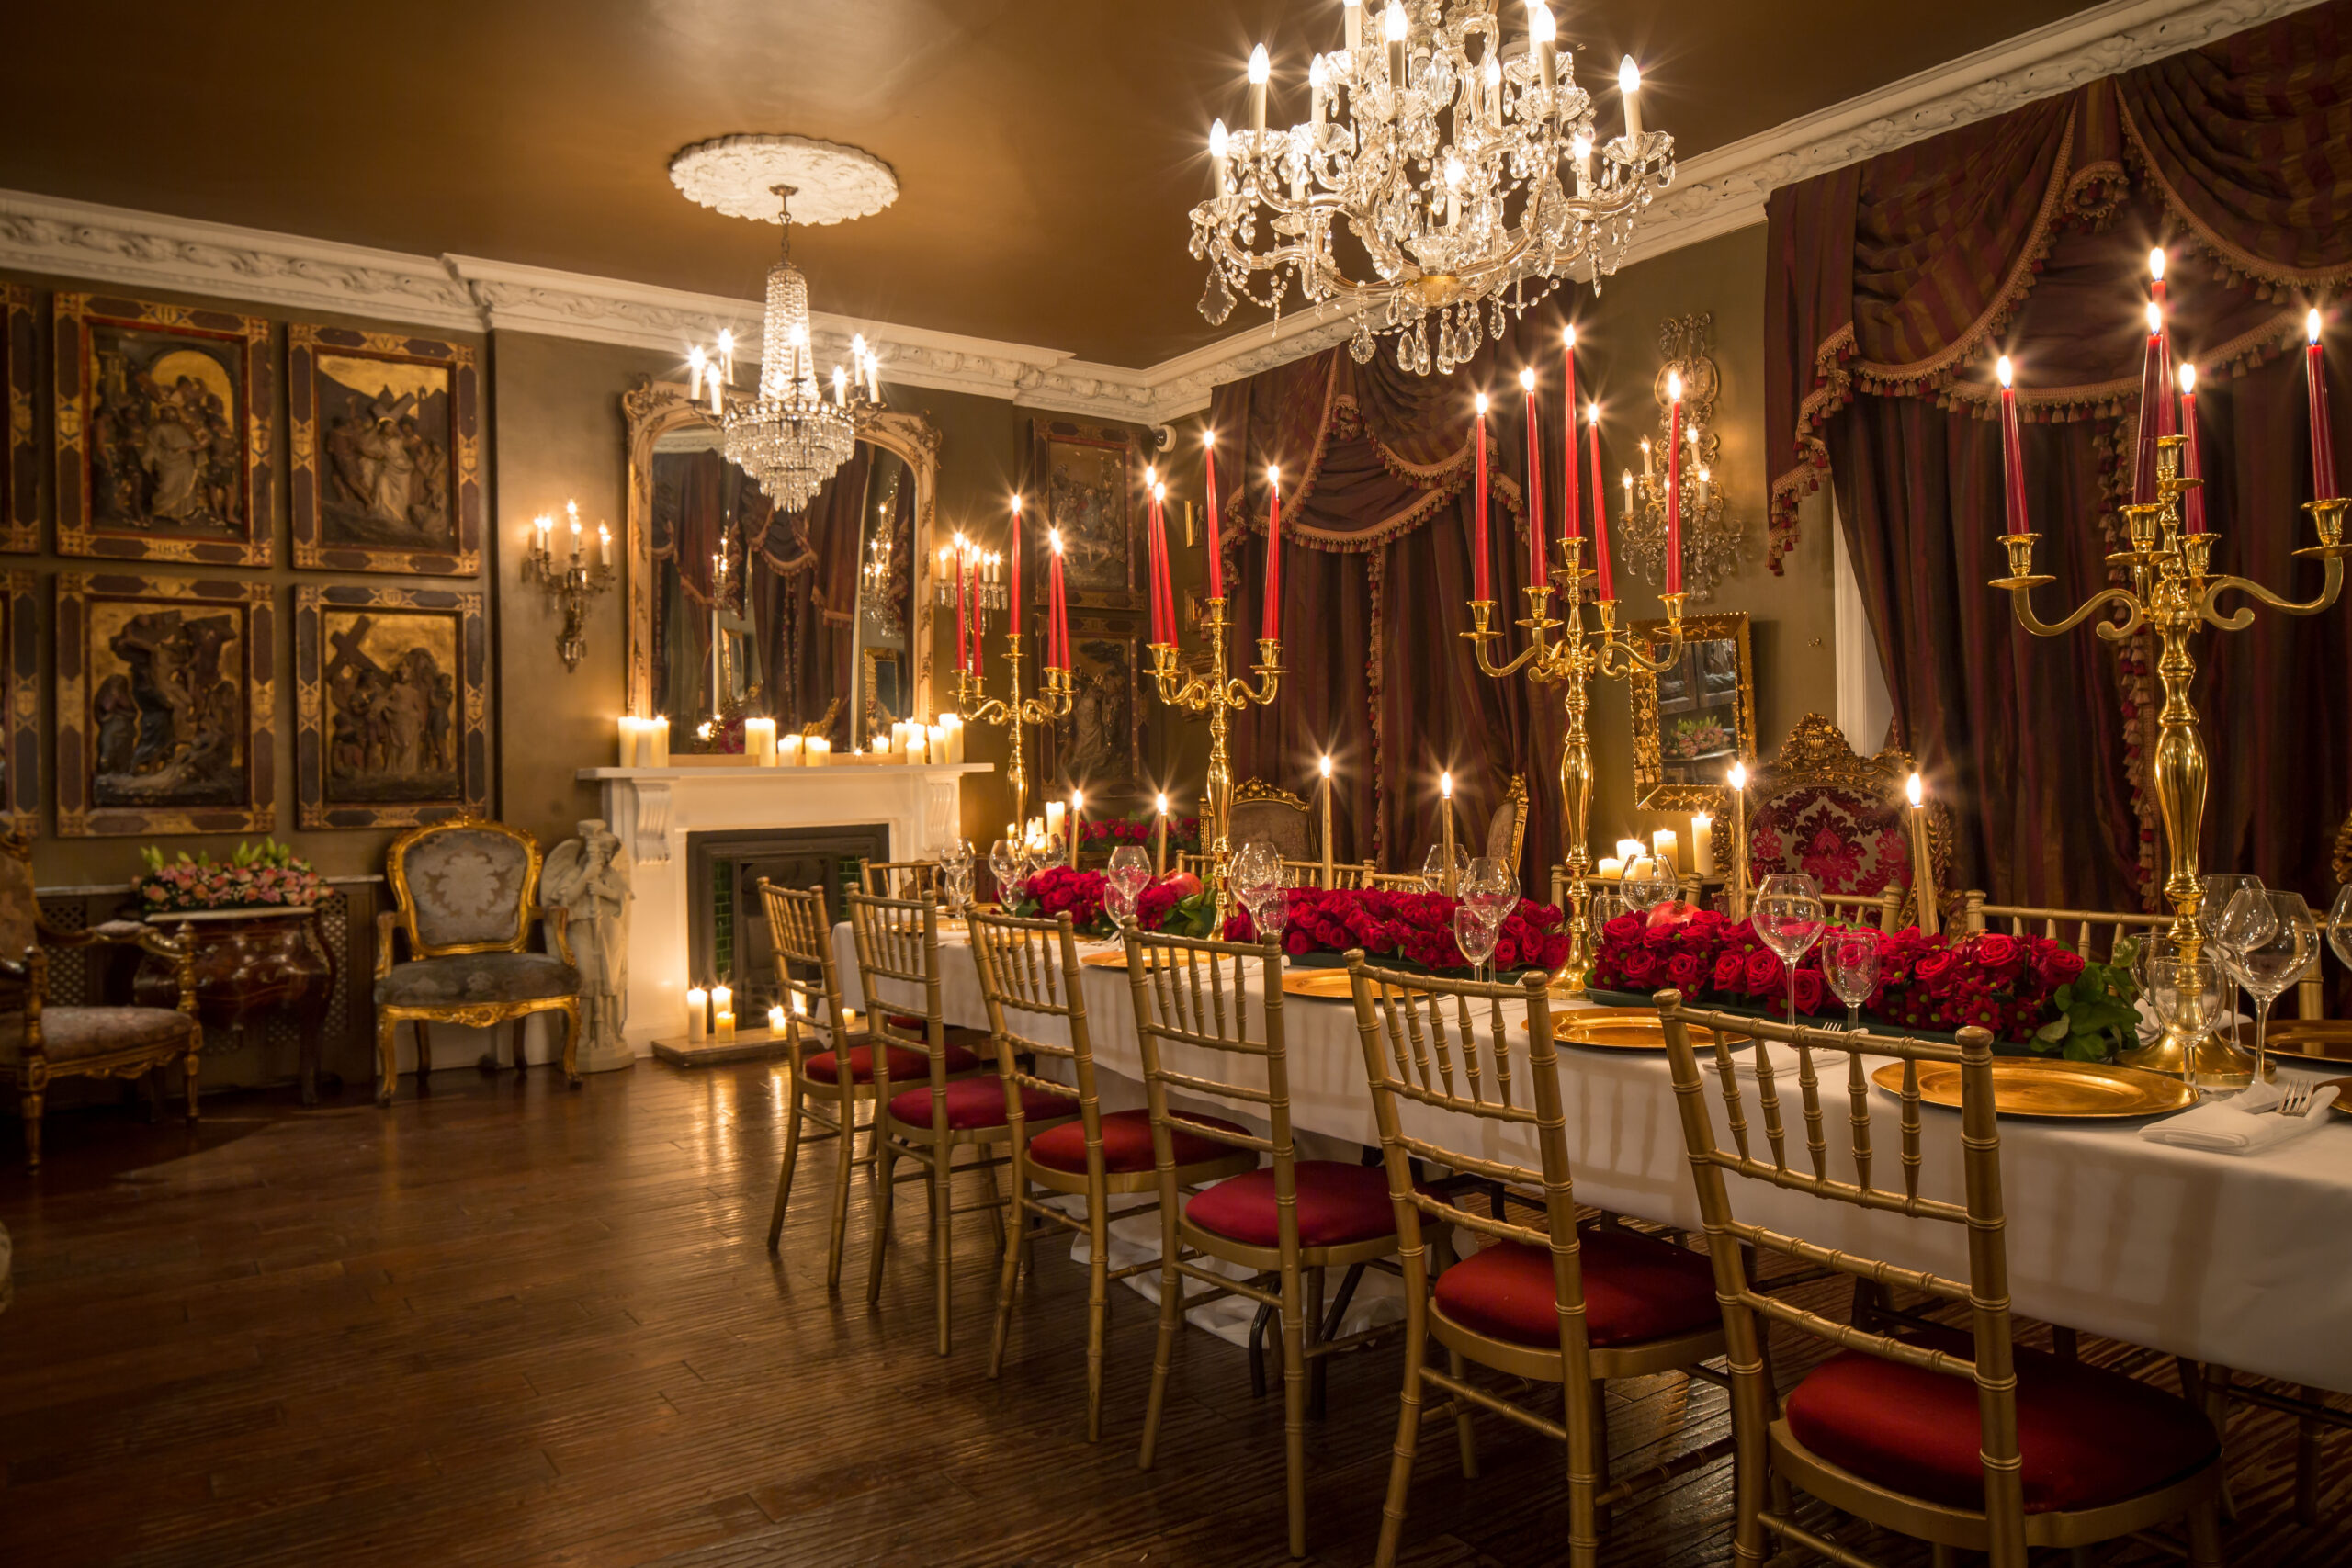 The Luxe List September 2020 - Beach Blanket Babylon – Back Open & Looking Fa-bu-lous! A new menu and a new look for the Notting Hill mansion house